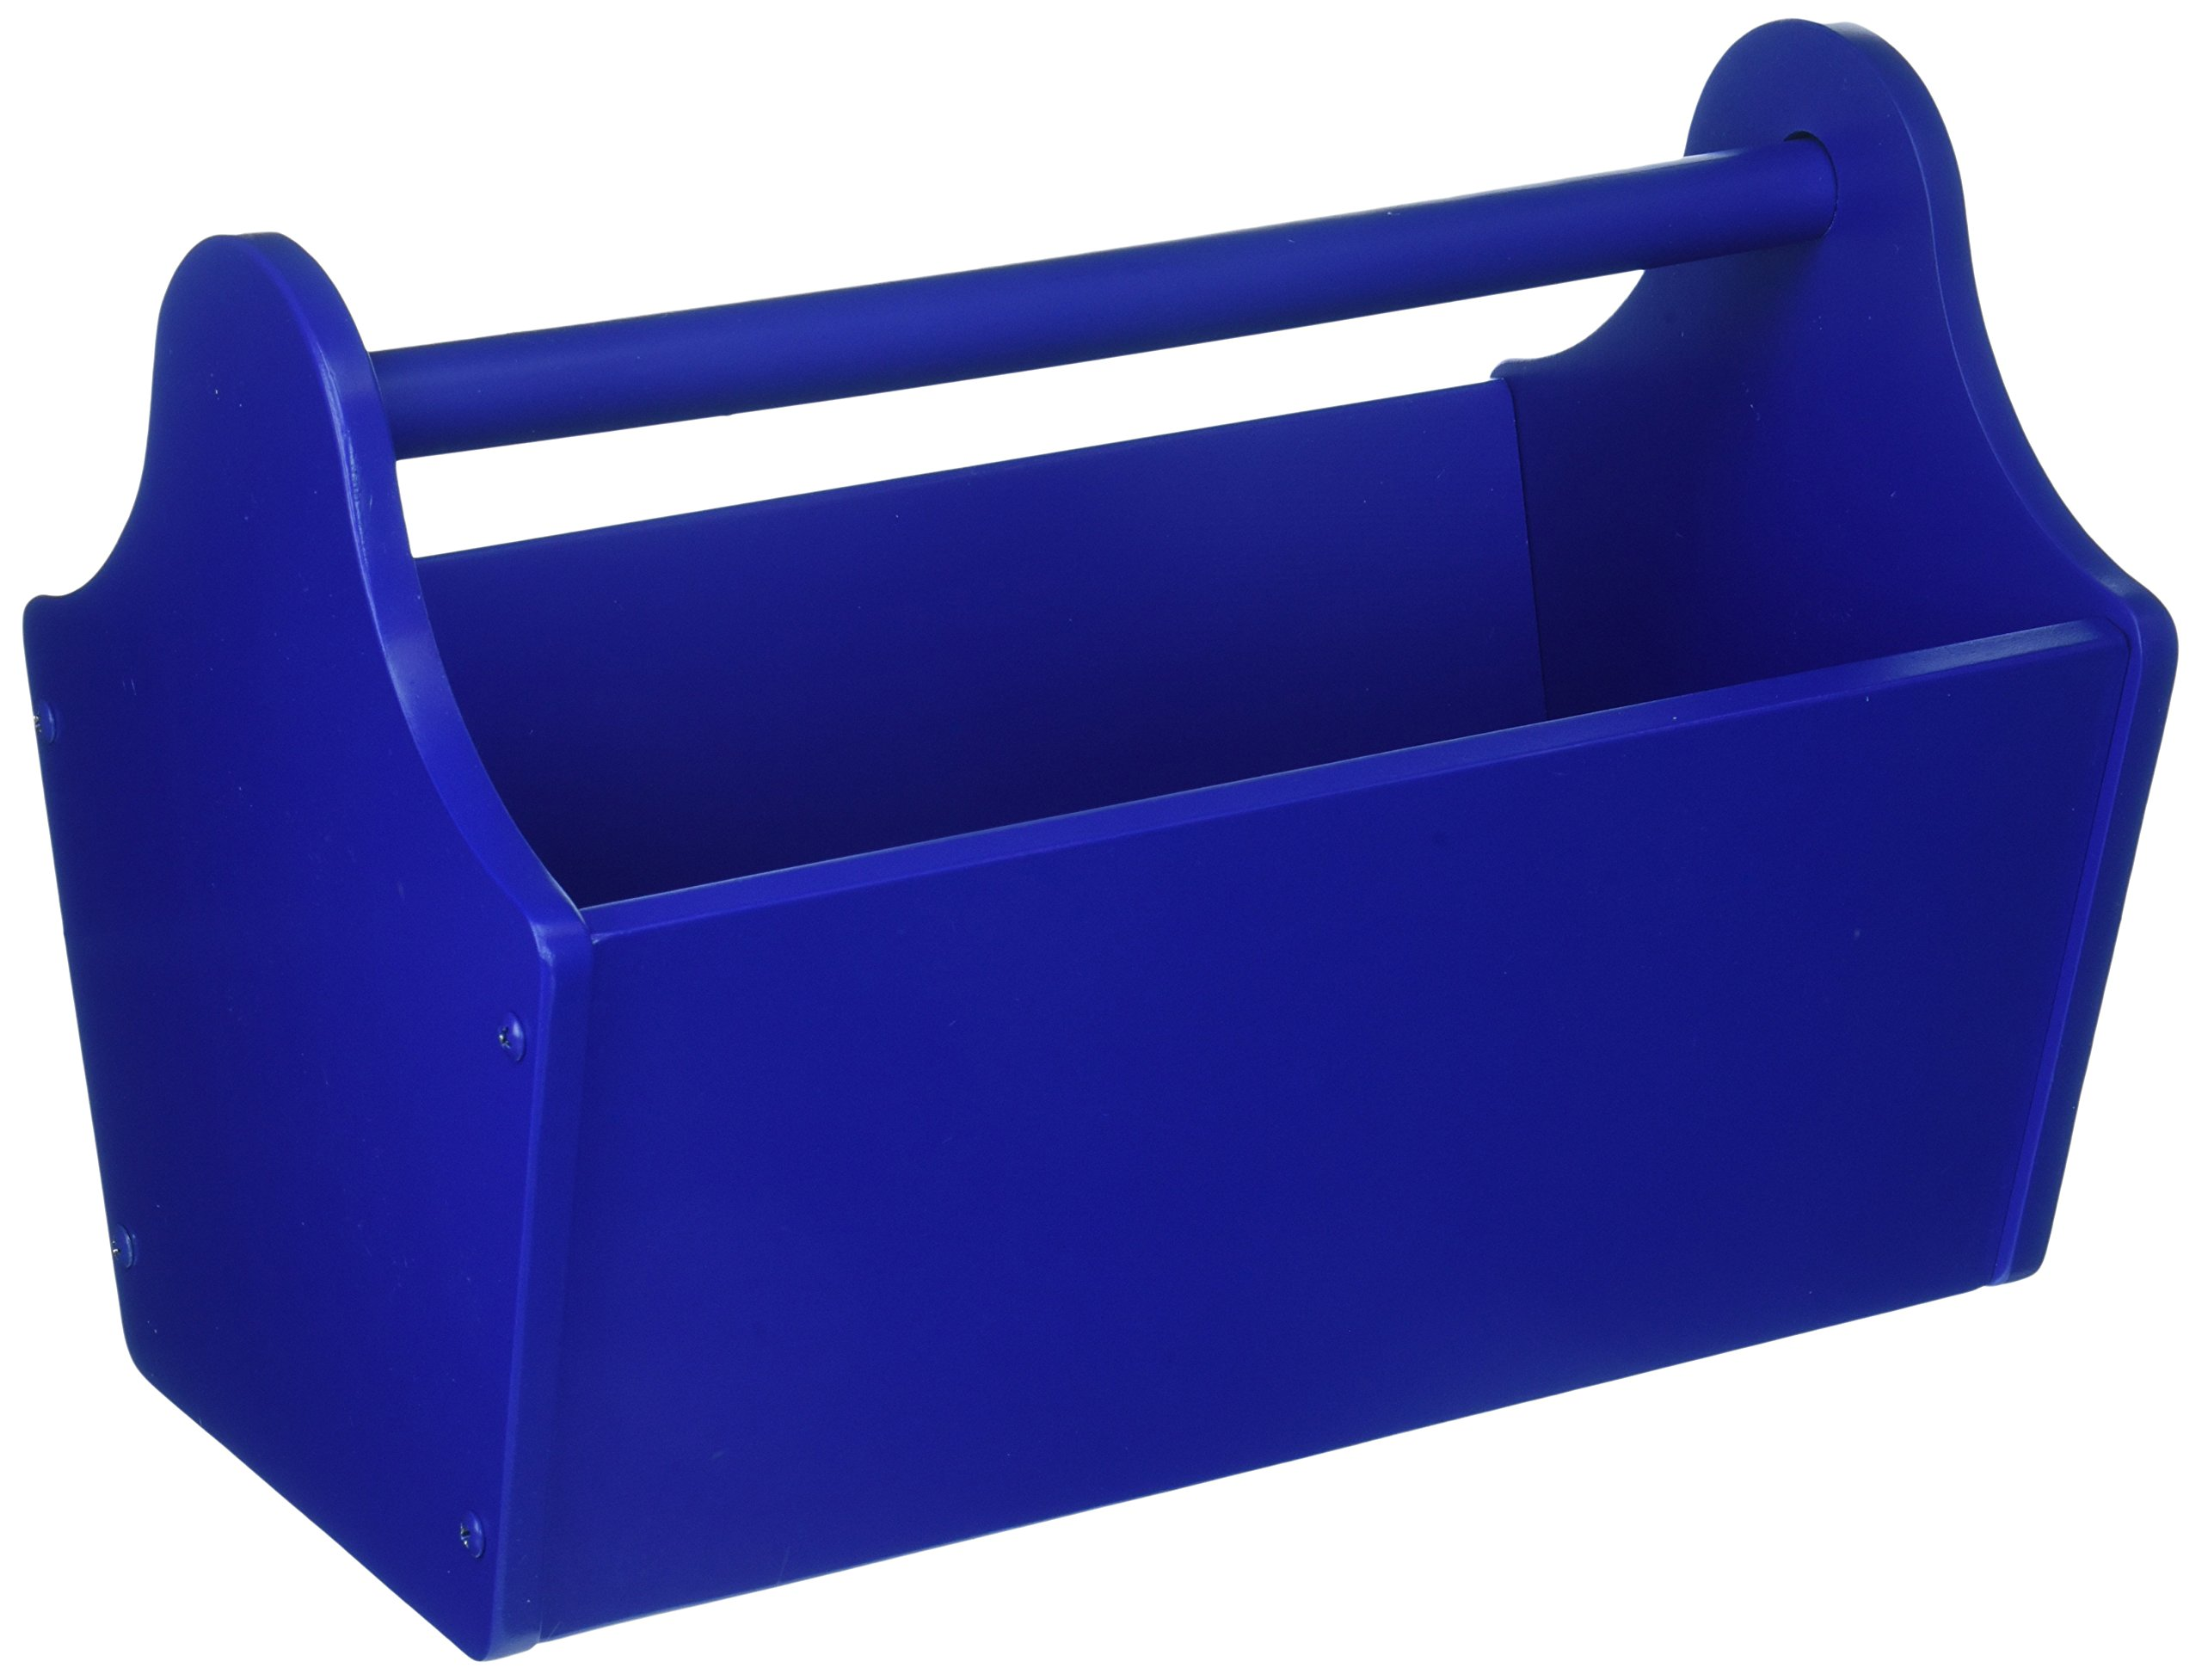 KidKraft Toy Caddy - Blue